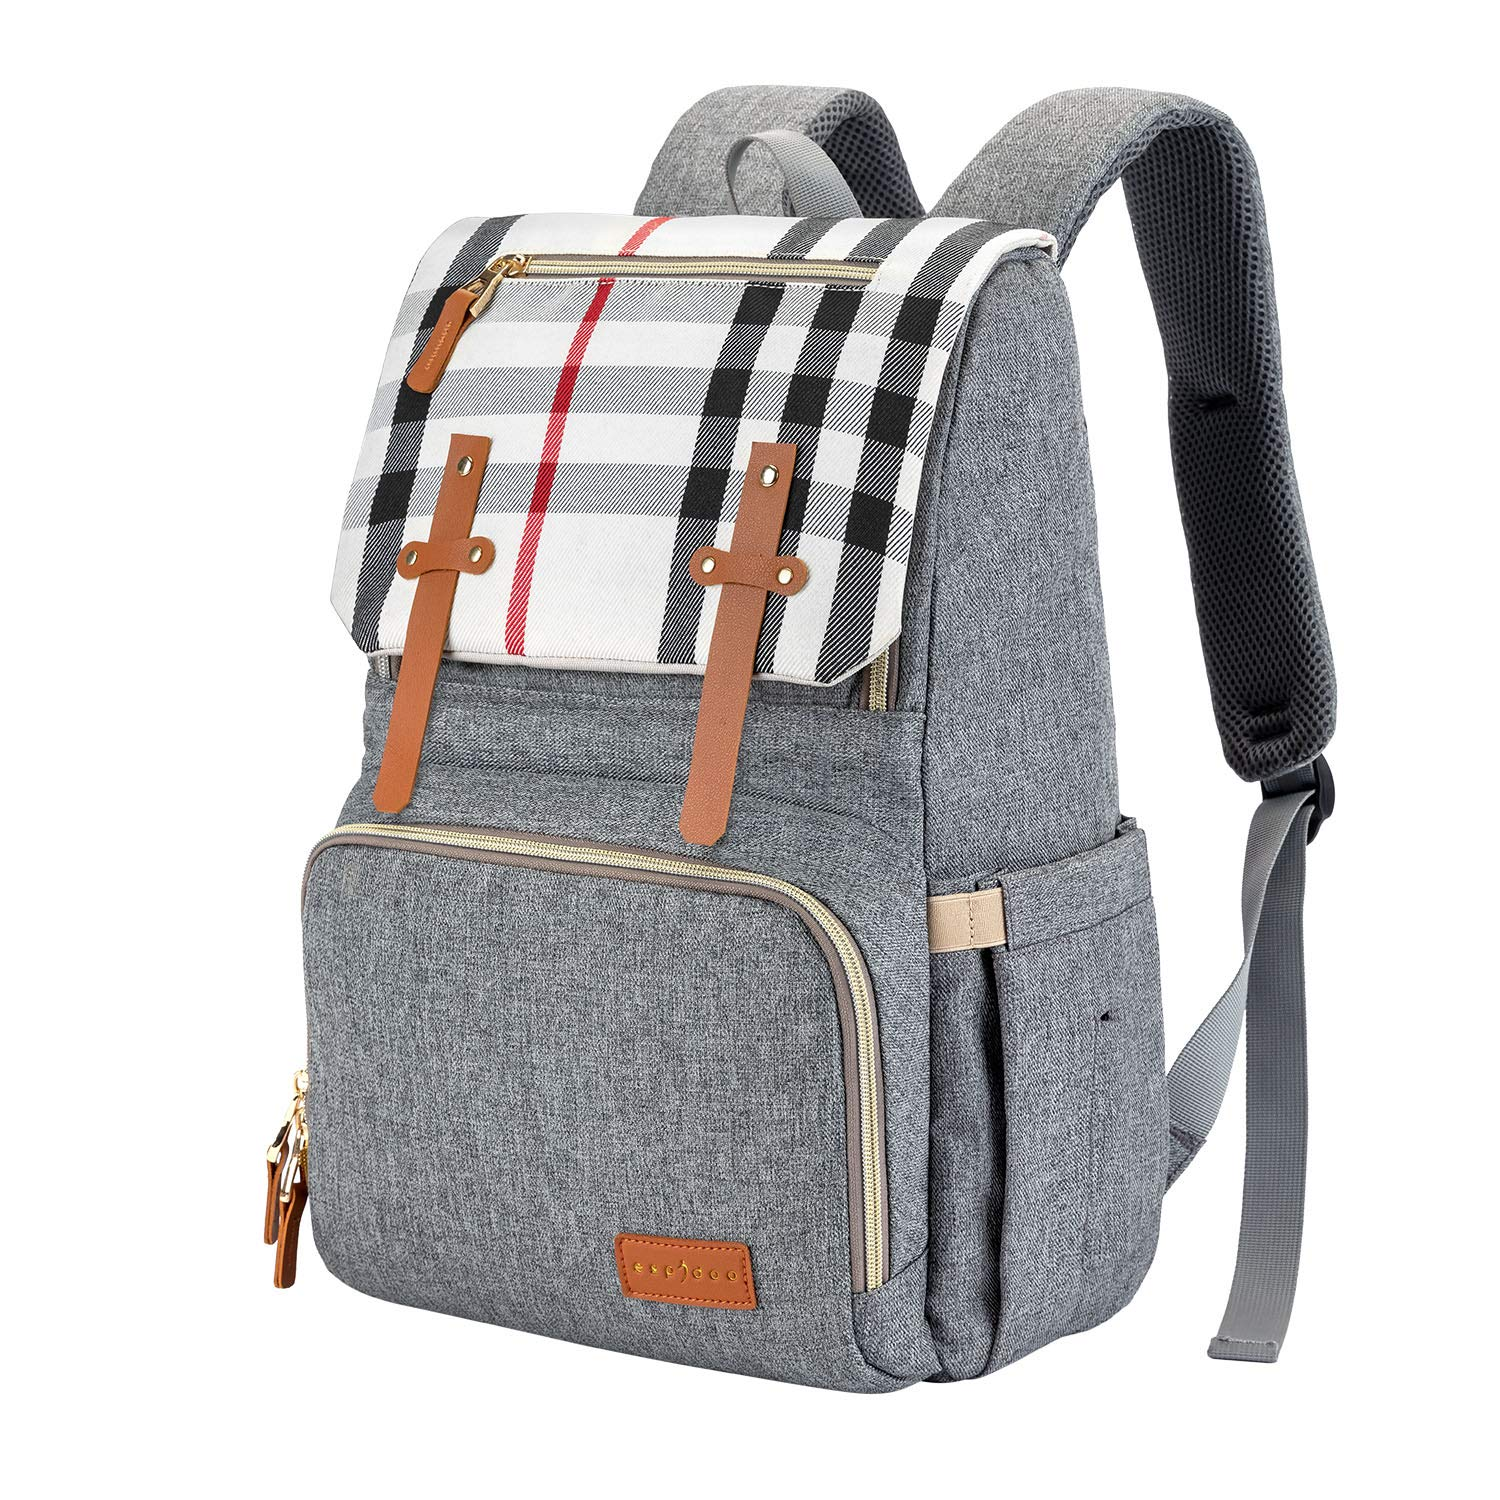 ESPIDOO Baby Diaper Bag backpack, Large Capacity Multi-Function Waterproof Maternity Nappy Bags Changing Bags with Insulated Pockets and Stroller Straper for Mom Dad travel Gear, Light Grey with Plaid